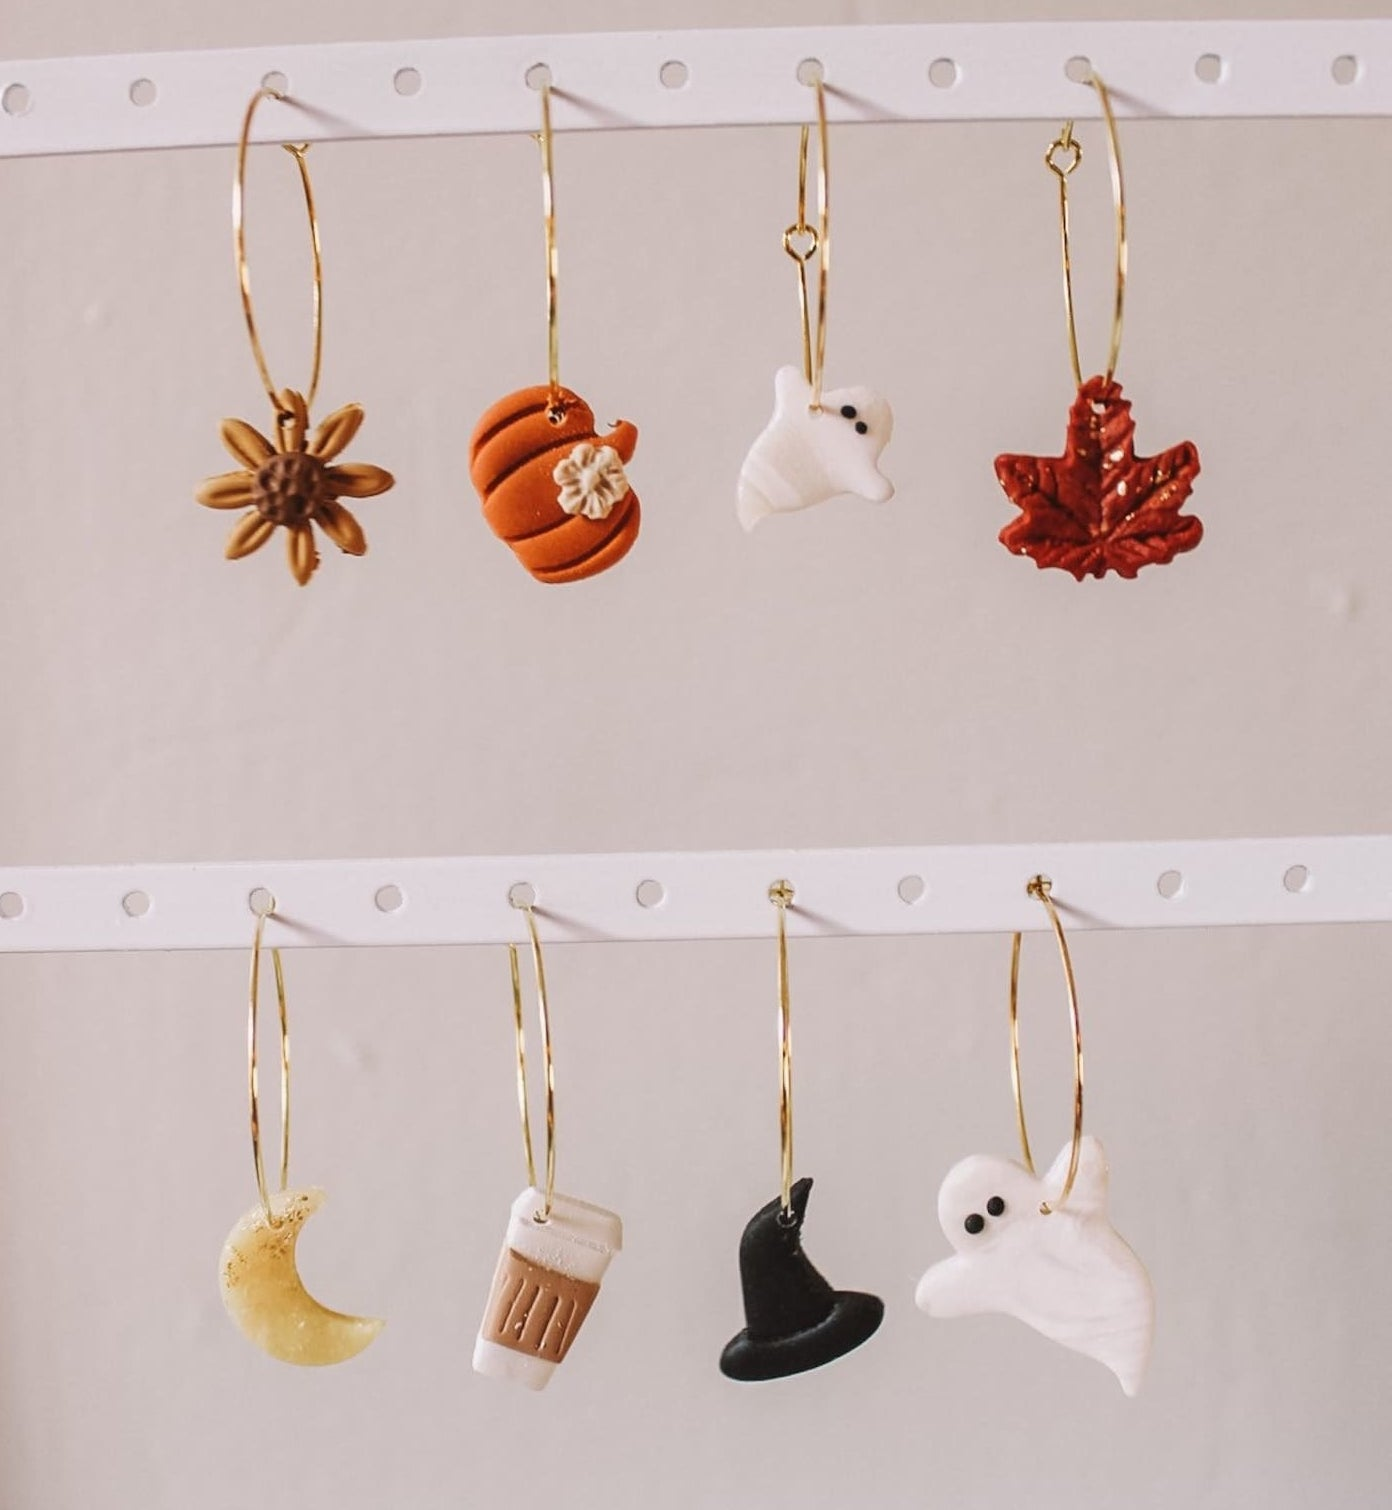 the different seasonal charms on gold hoops